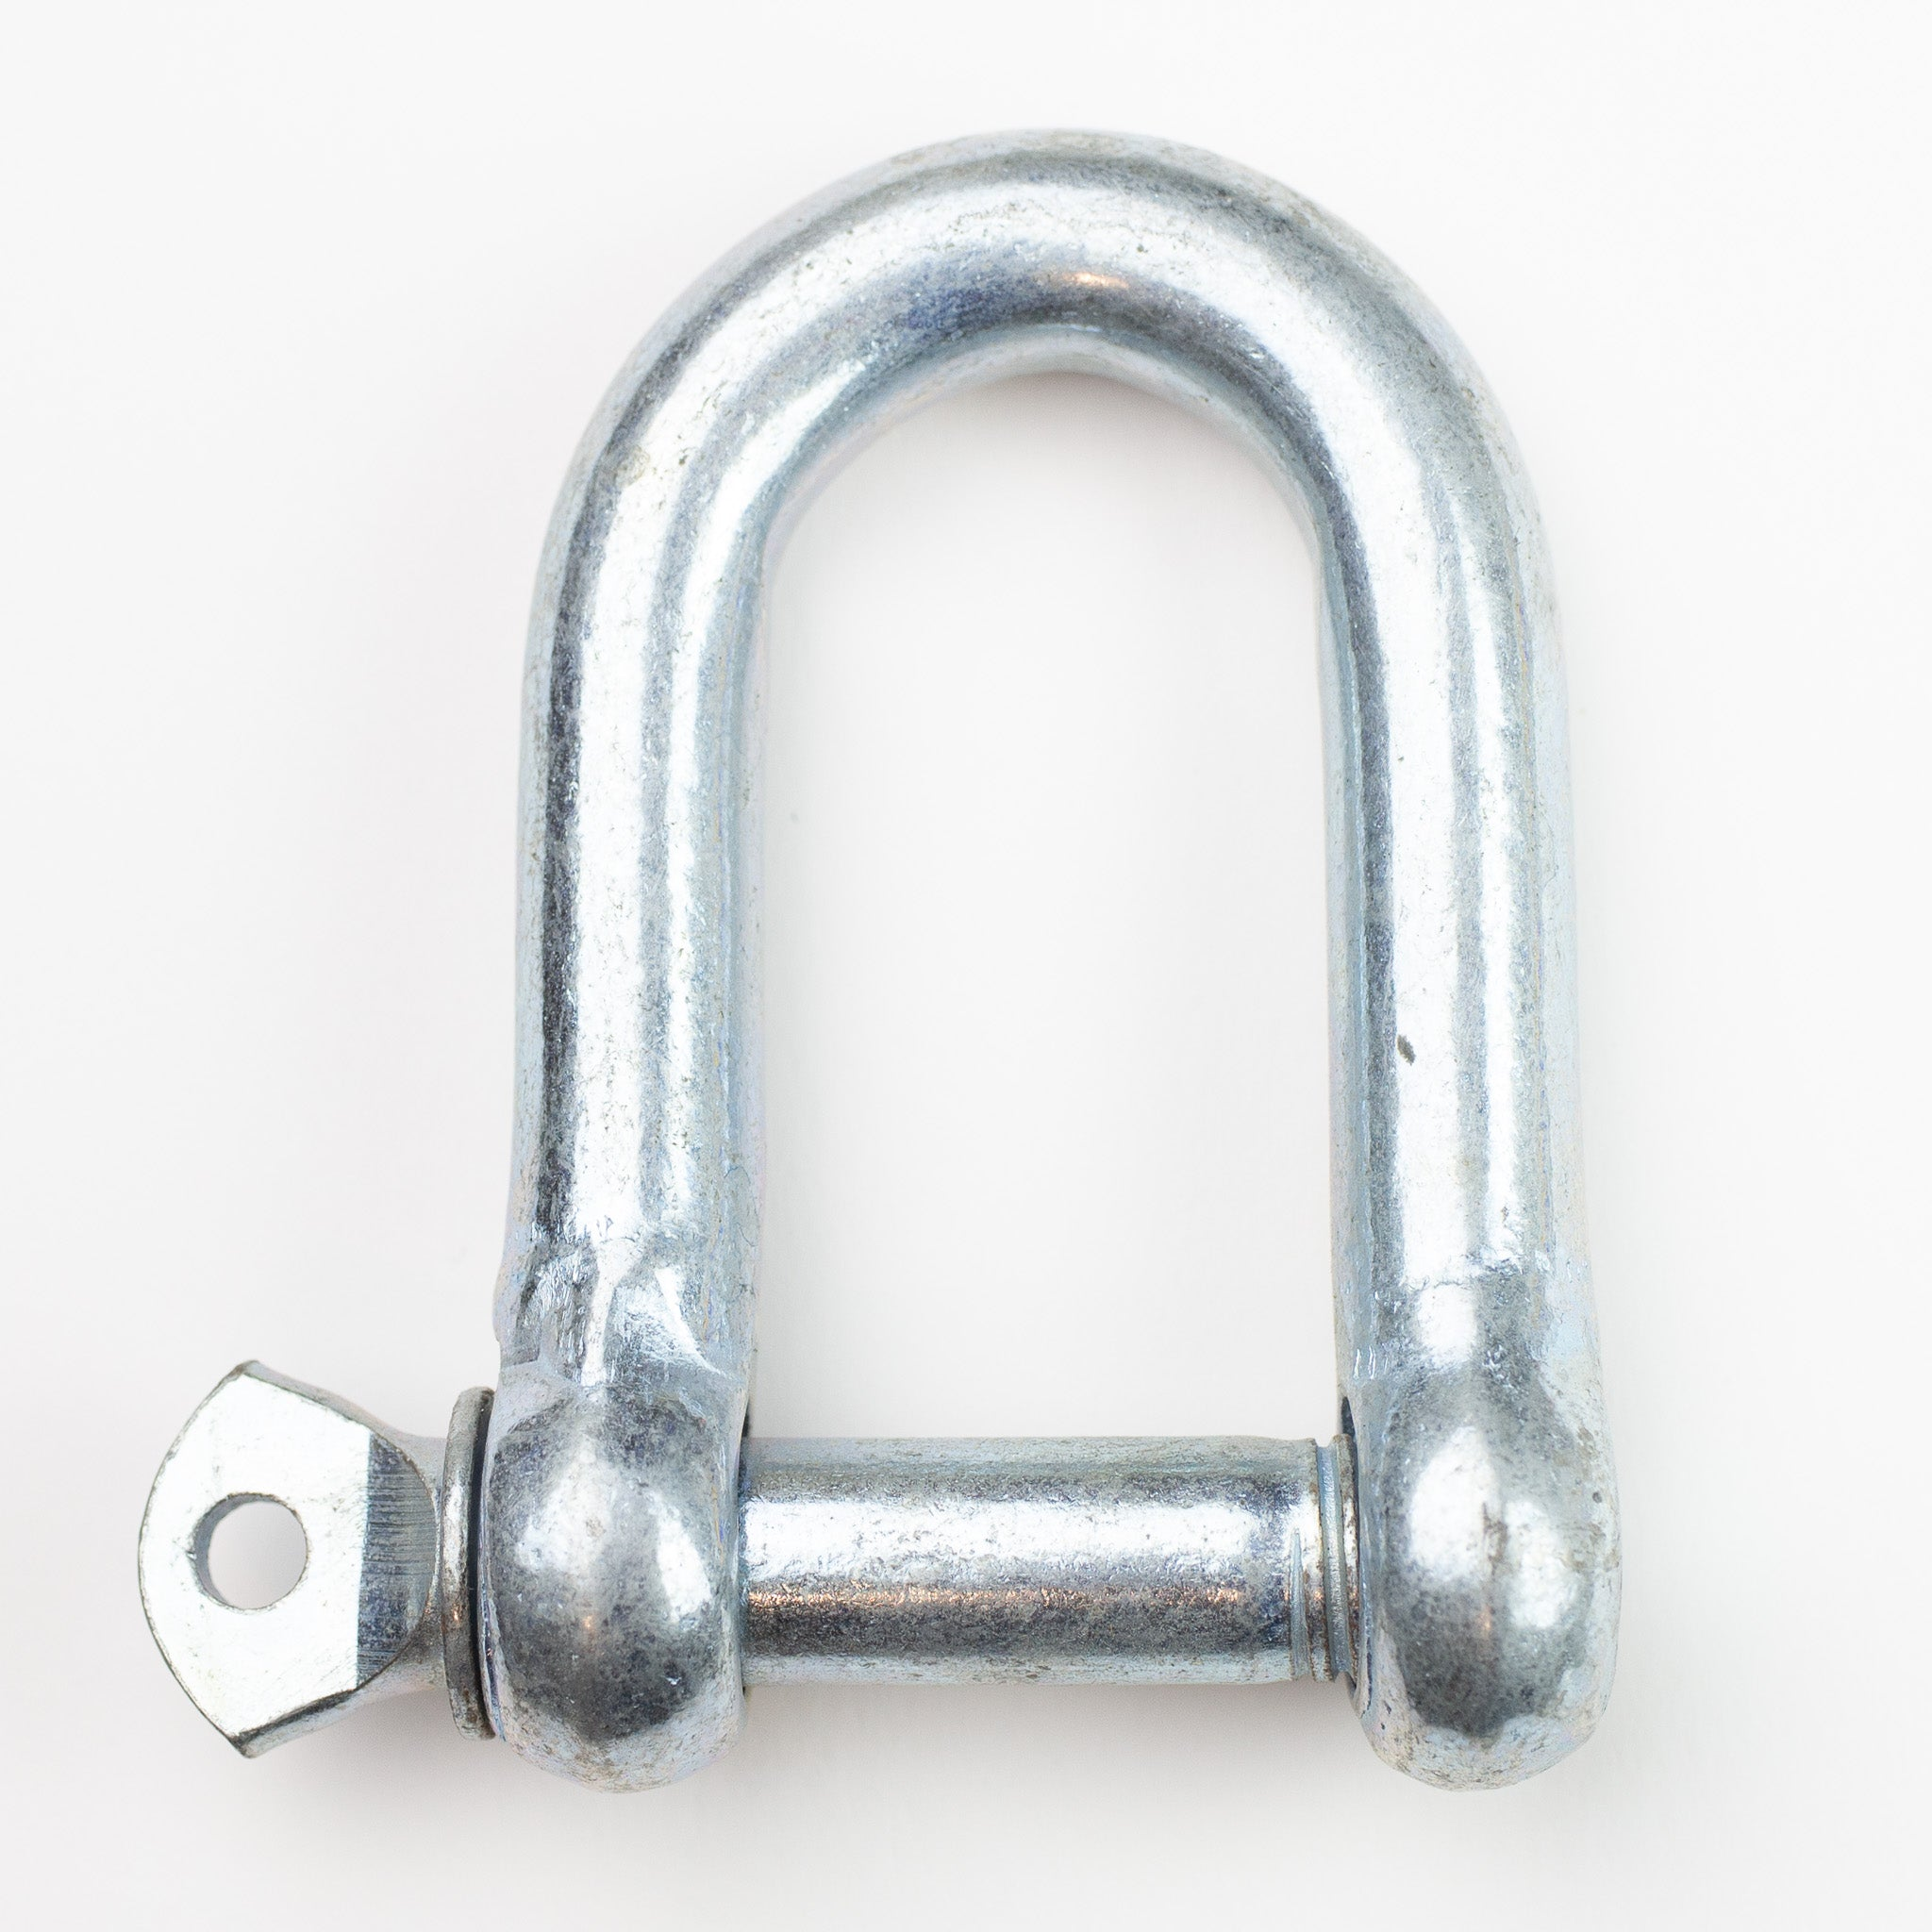 Commercial D Shackle - Galvanised